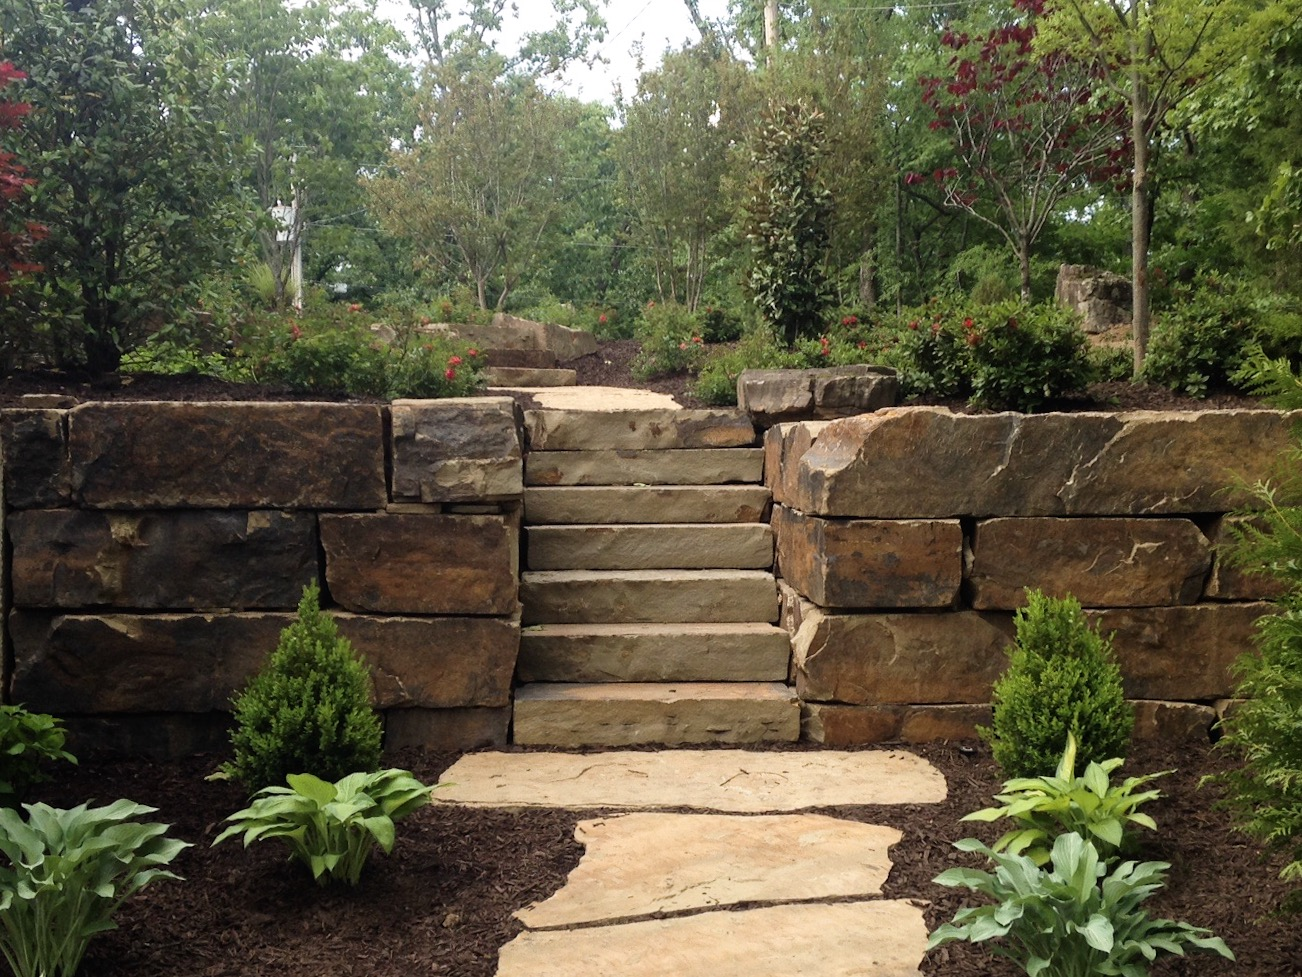 Retaining Wall Installation - From large stone dry stacked boulder walls to masonry retaining walls, we can install one wall or terrace with multiple walls to give you the look and functionality your property deserves.